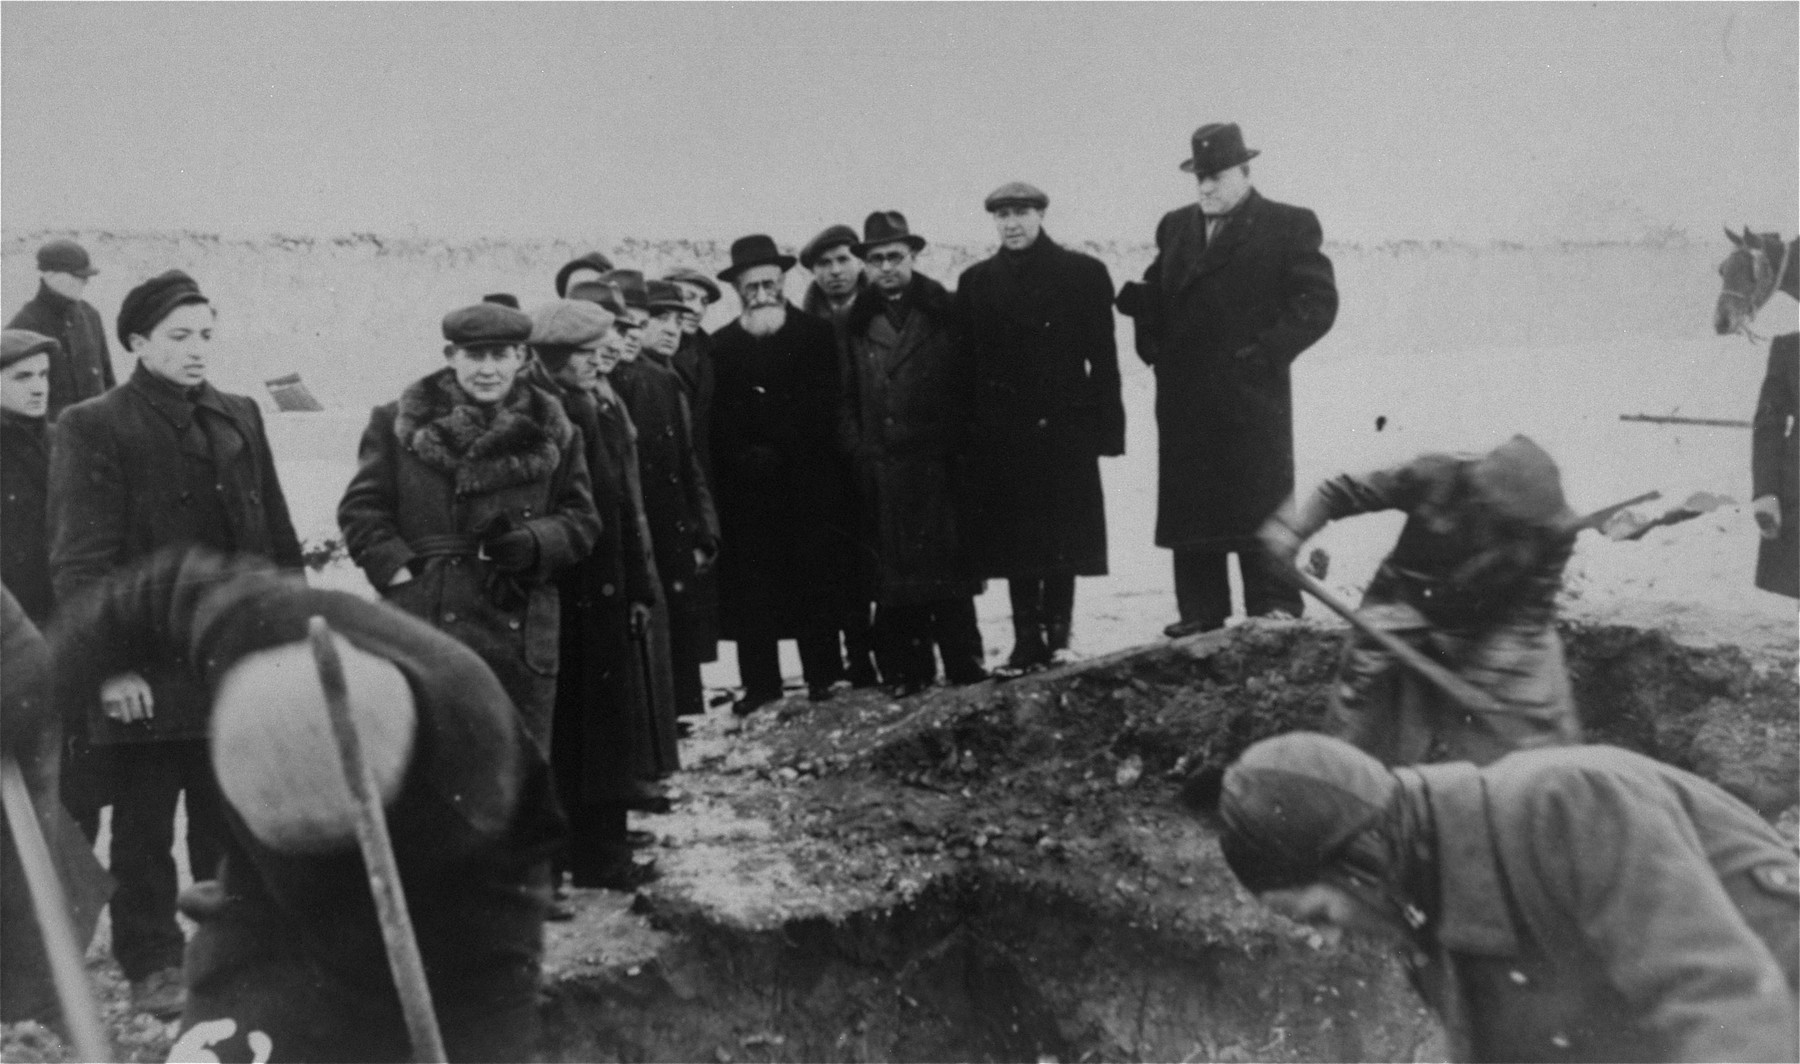 Jewish survivors exhume a mass grave containing the remains of Jews murdered by the Germans in Czestochowa during World War II.